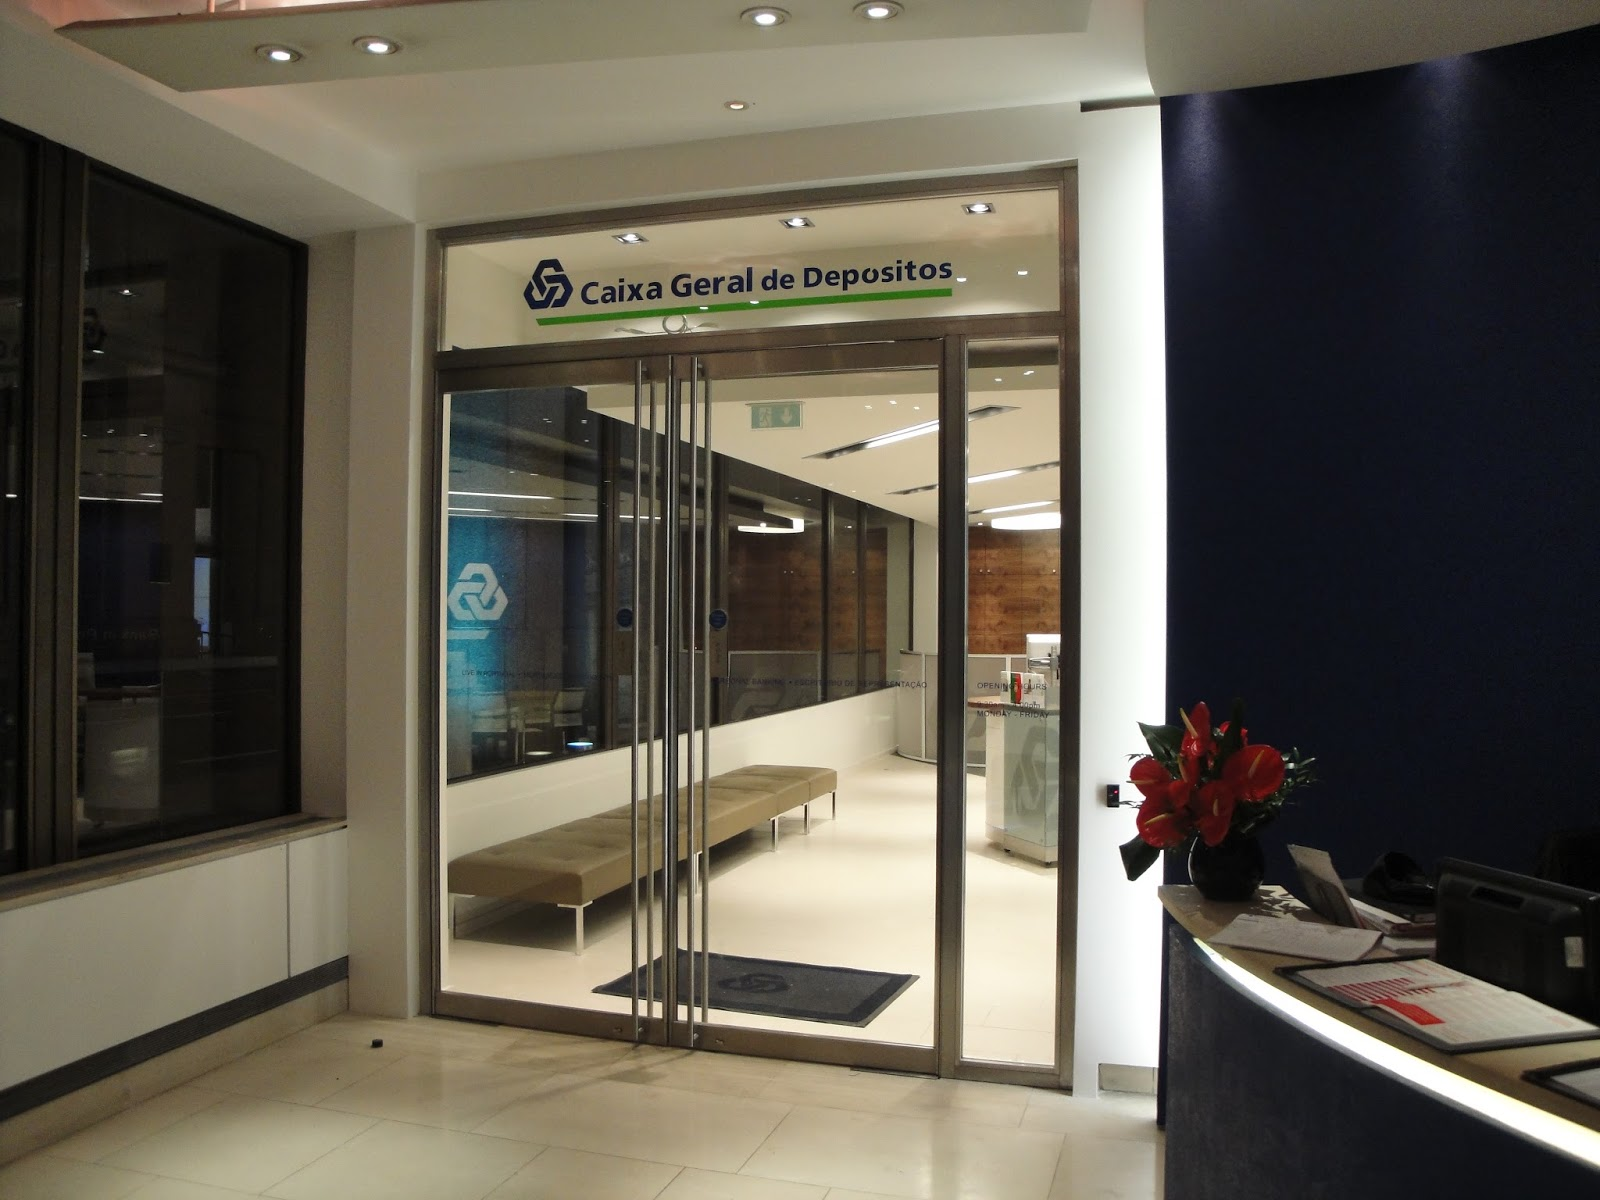 The door industry journal the metflam phoenix with 6060 fire metflam a company known for some very clever high performance fire resistant glass doors has been acquired by dr services resulting in a much missed planetlyrics Choice Image